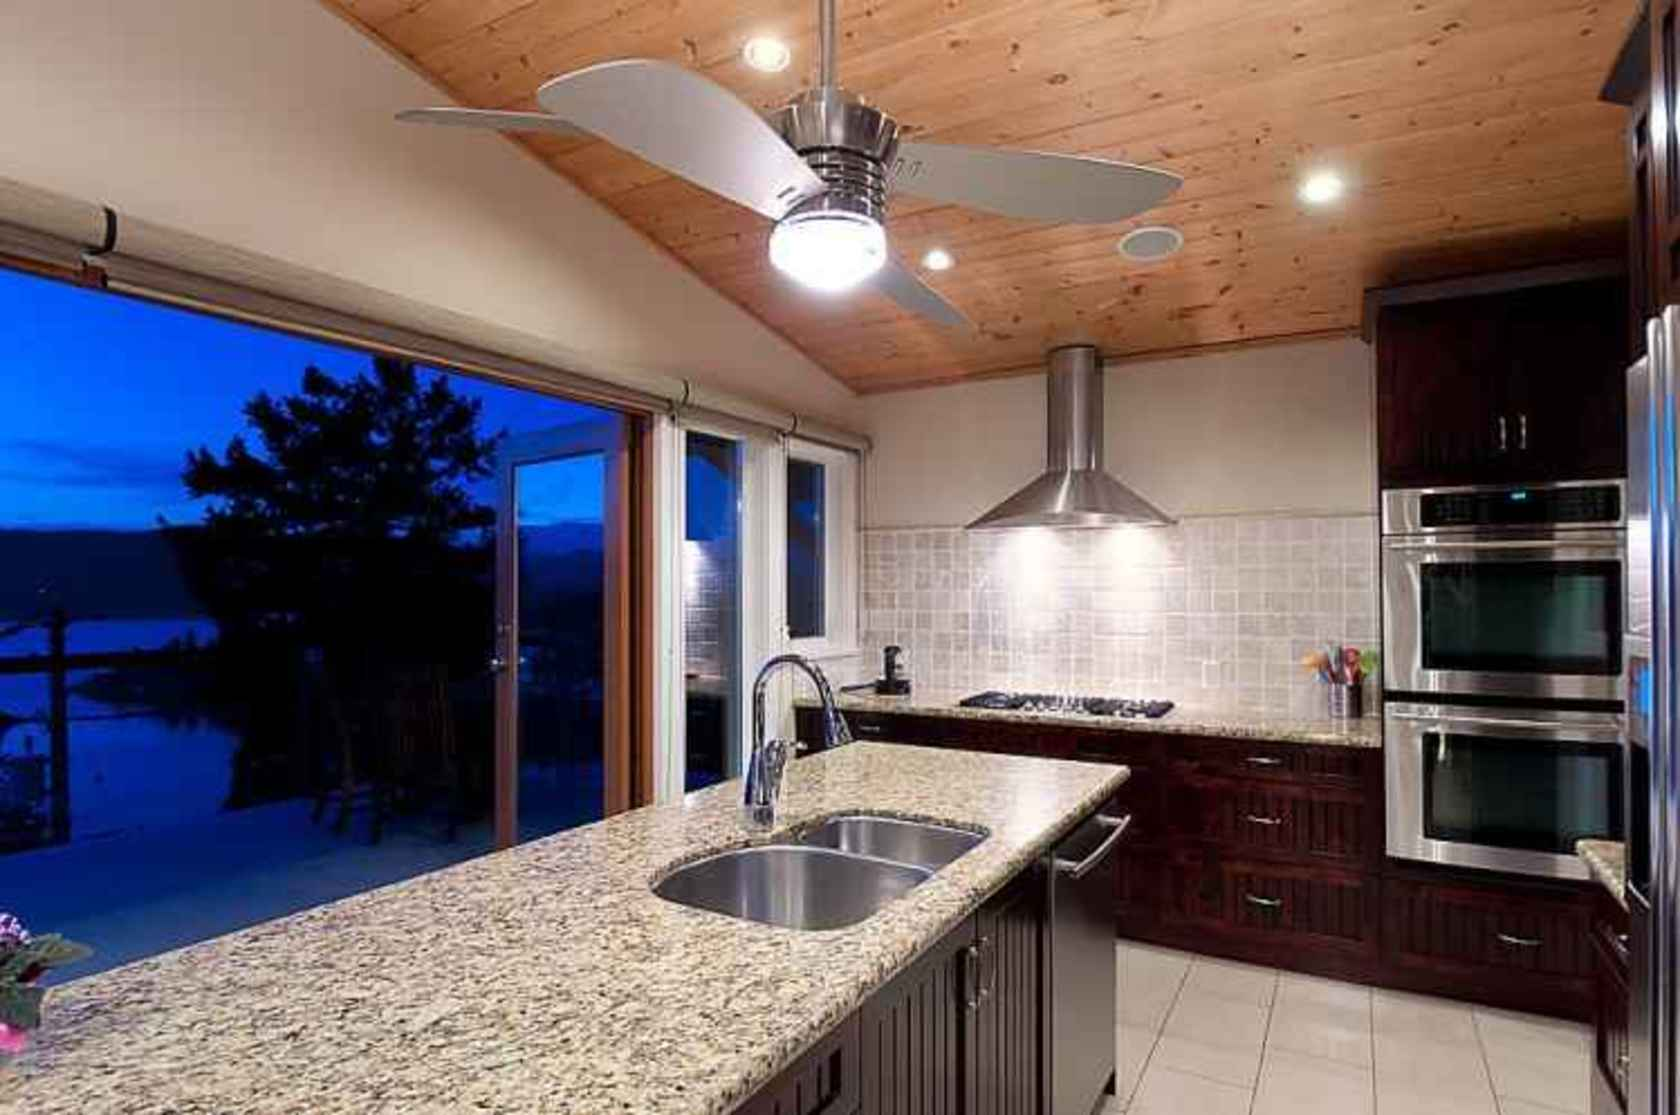 749x497_6251-overstone-drive-gleneagles-west-vancouver-13-15515 at 6251 Overstone Drive, Gleneagles, West Vancouver